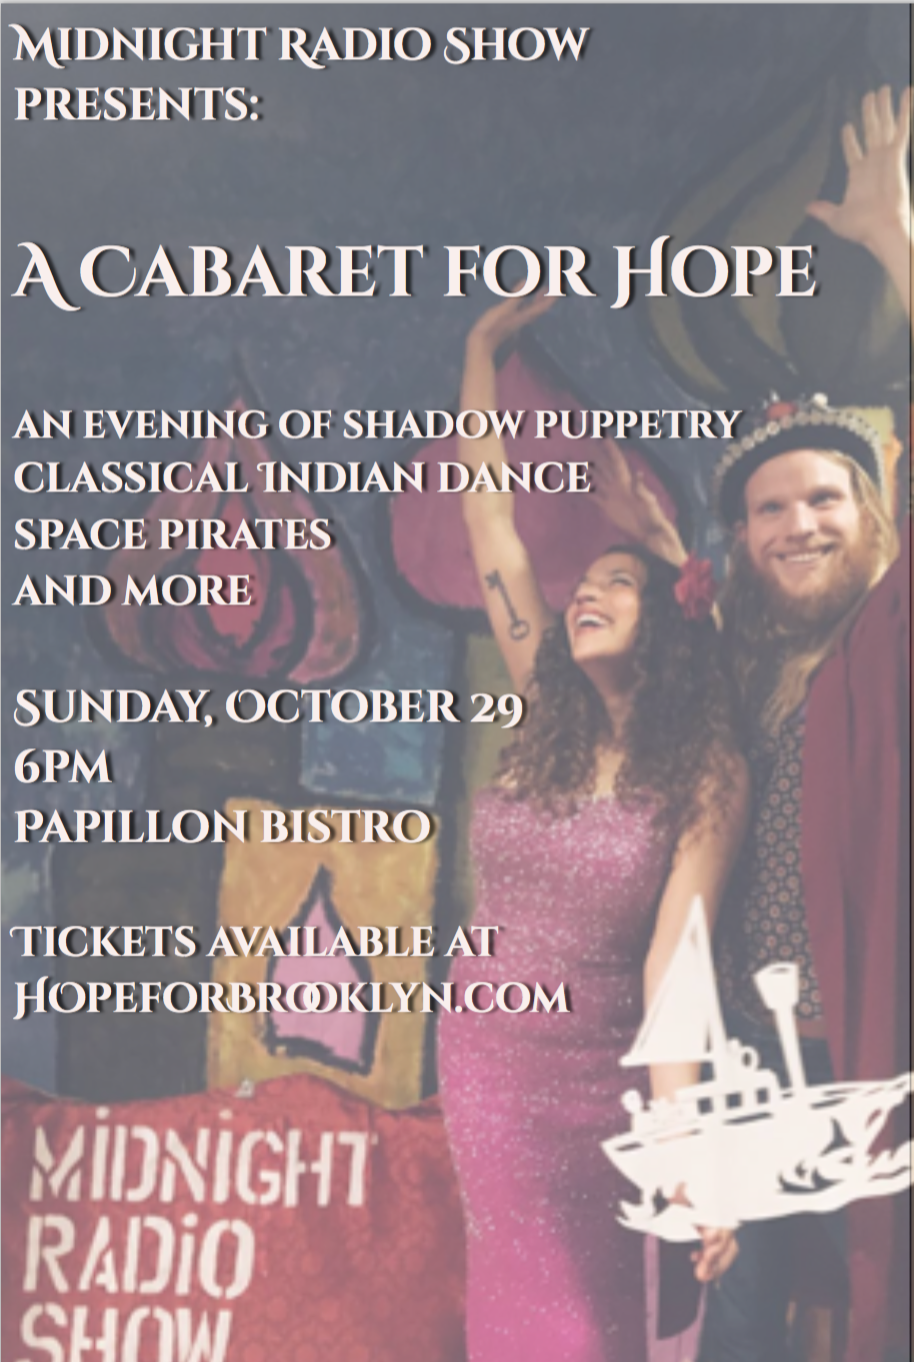 Come to our Cabaret for Hope